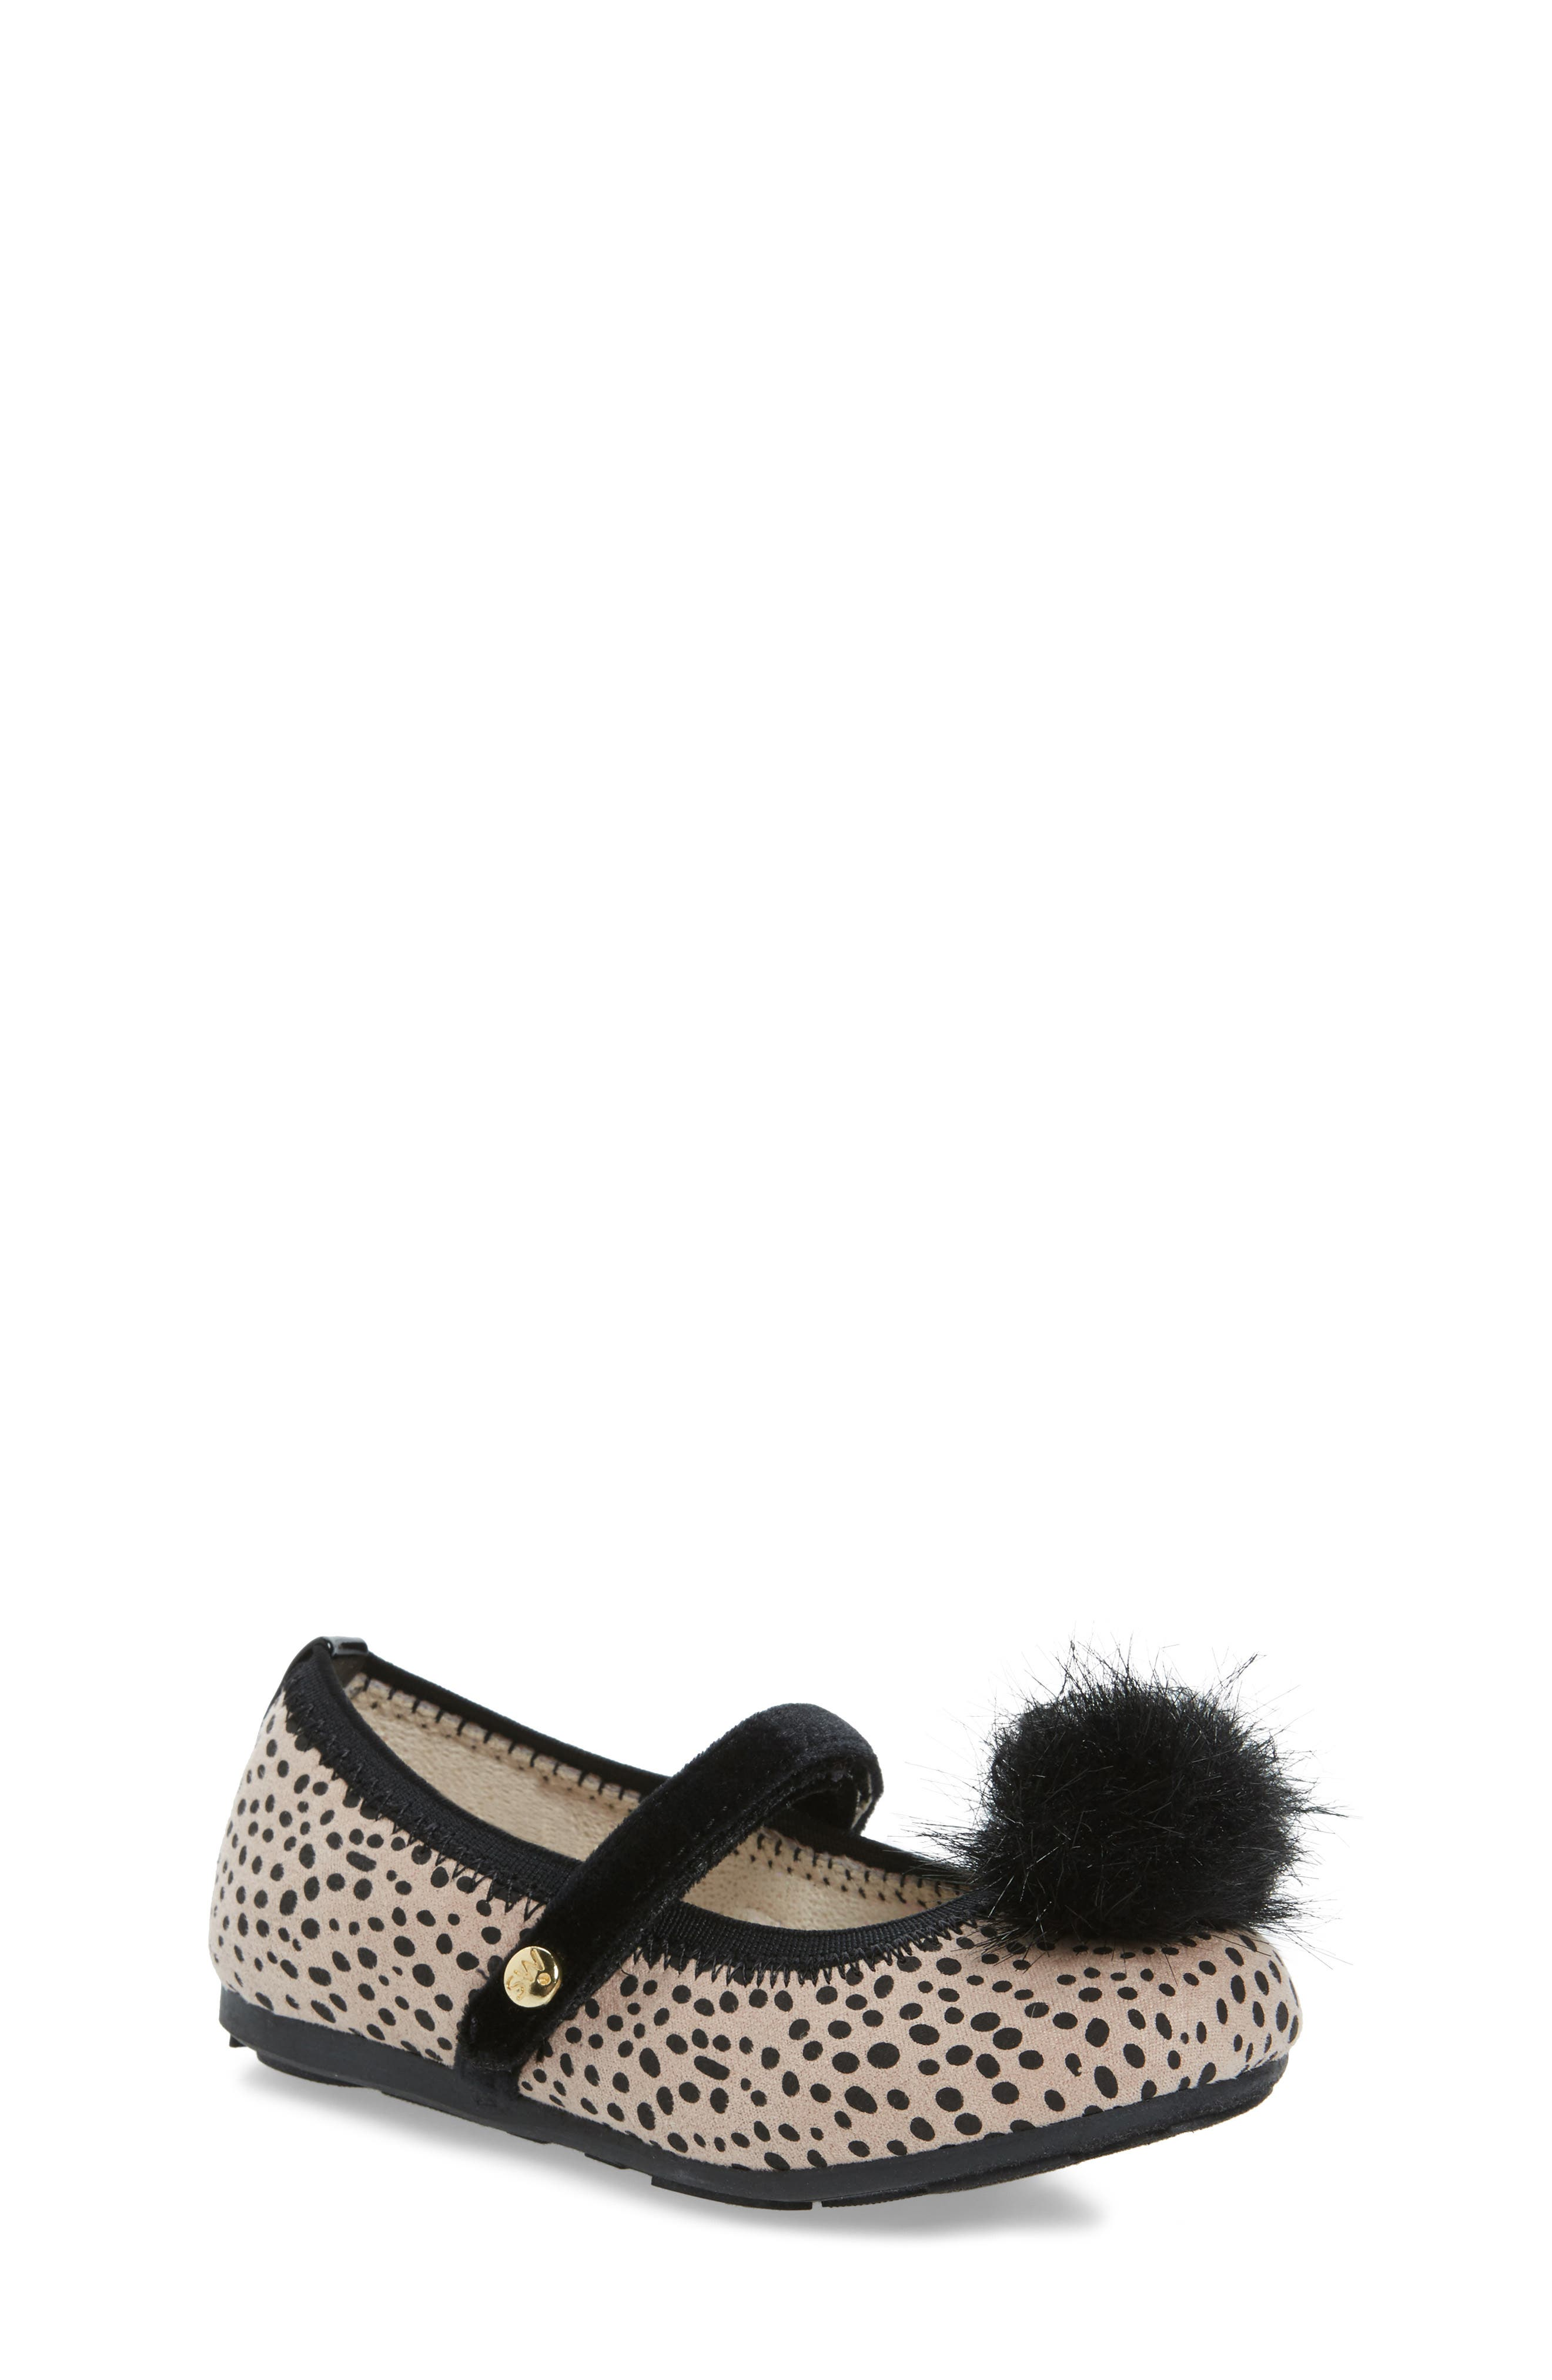 Stuart Weitzman Fannie Cheetah Faux Fur Mary Jane (Walker & Toddler)